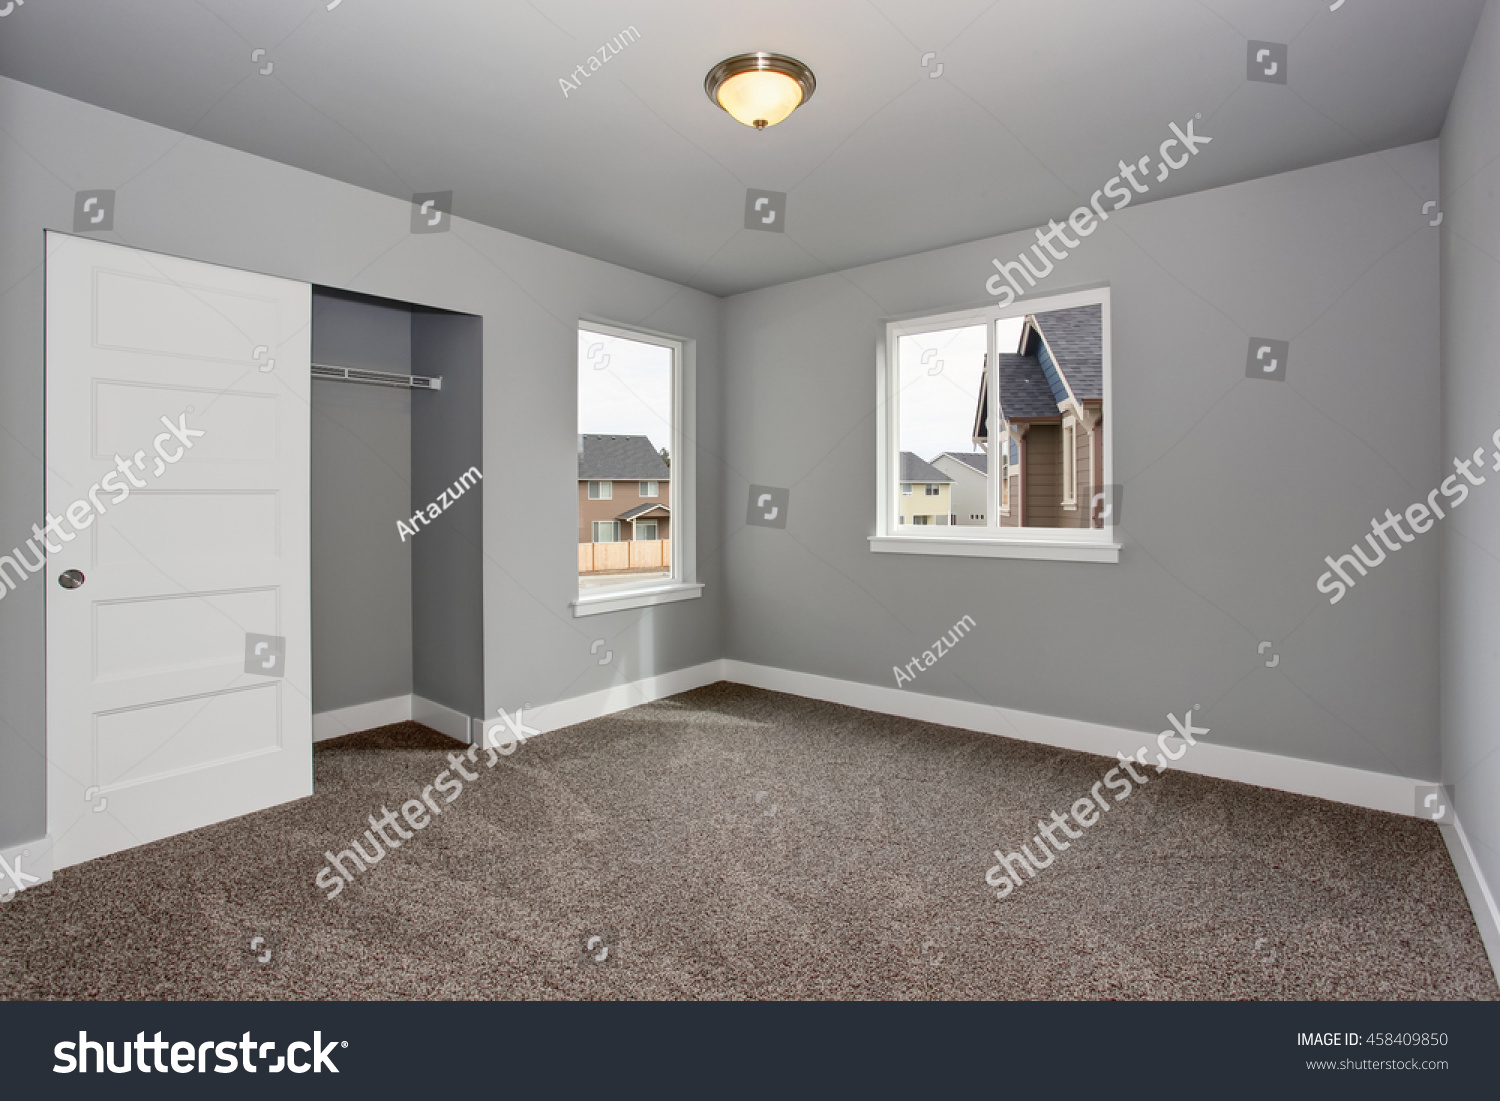 Small Basement Room Interior With Grey Walls And White Trim The Walk In